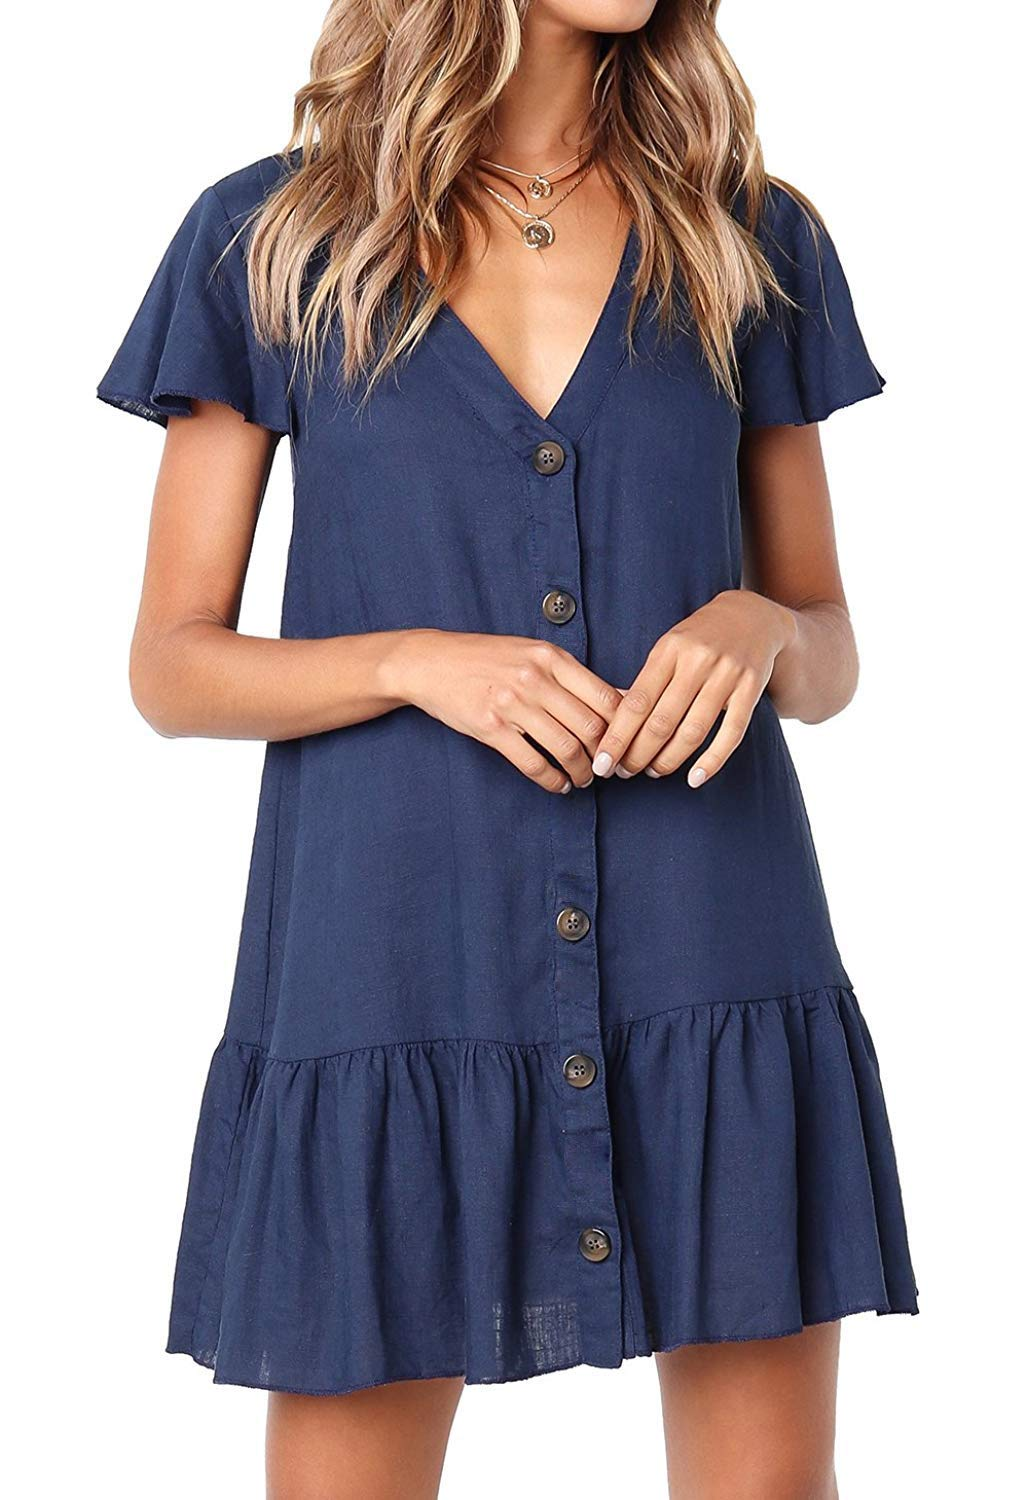 ren ze Womens Ruffles Short Sleeve V Neck Button Down Shirt Dresses Summer Short Dress Blue L